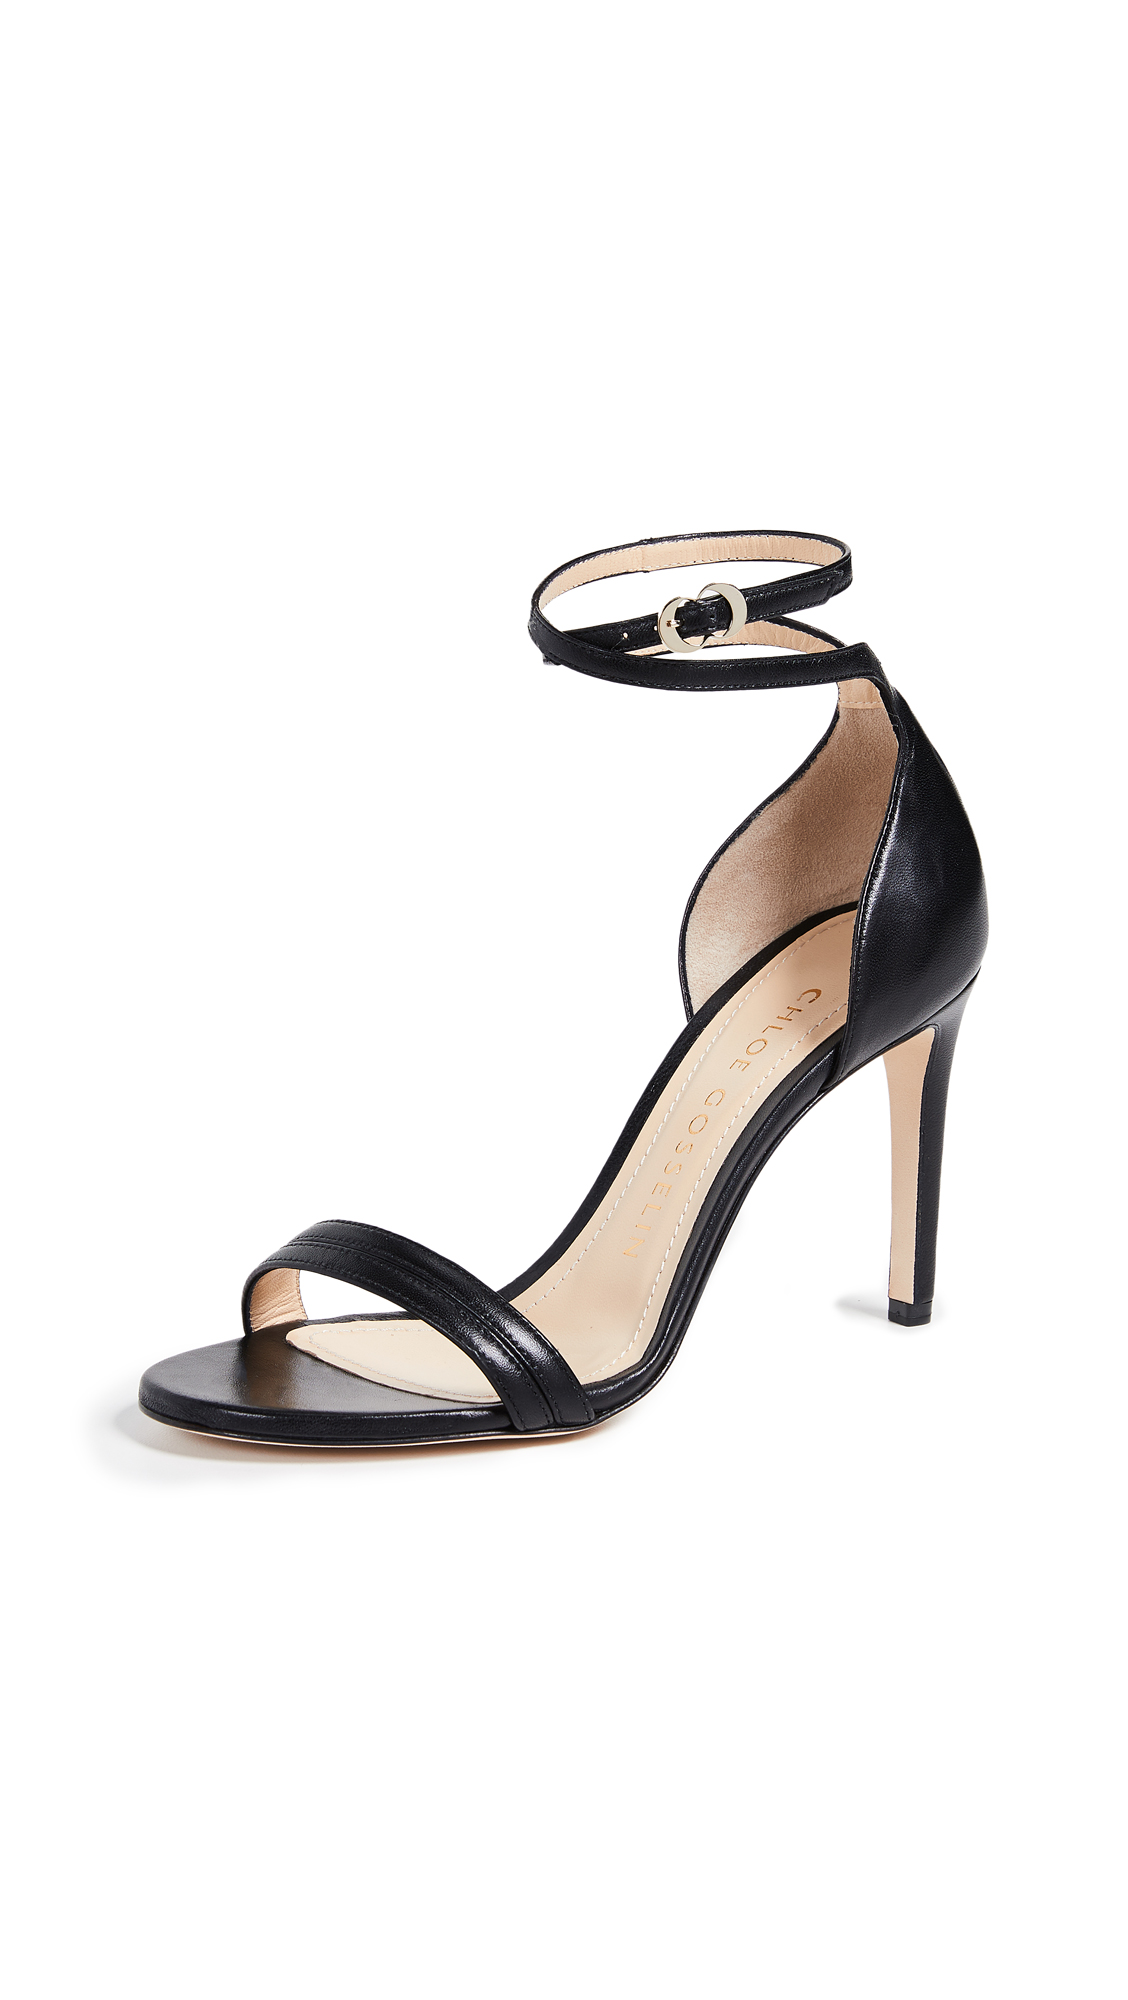 Chloe Gosselin Narcissus 90mm Sandals